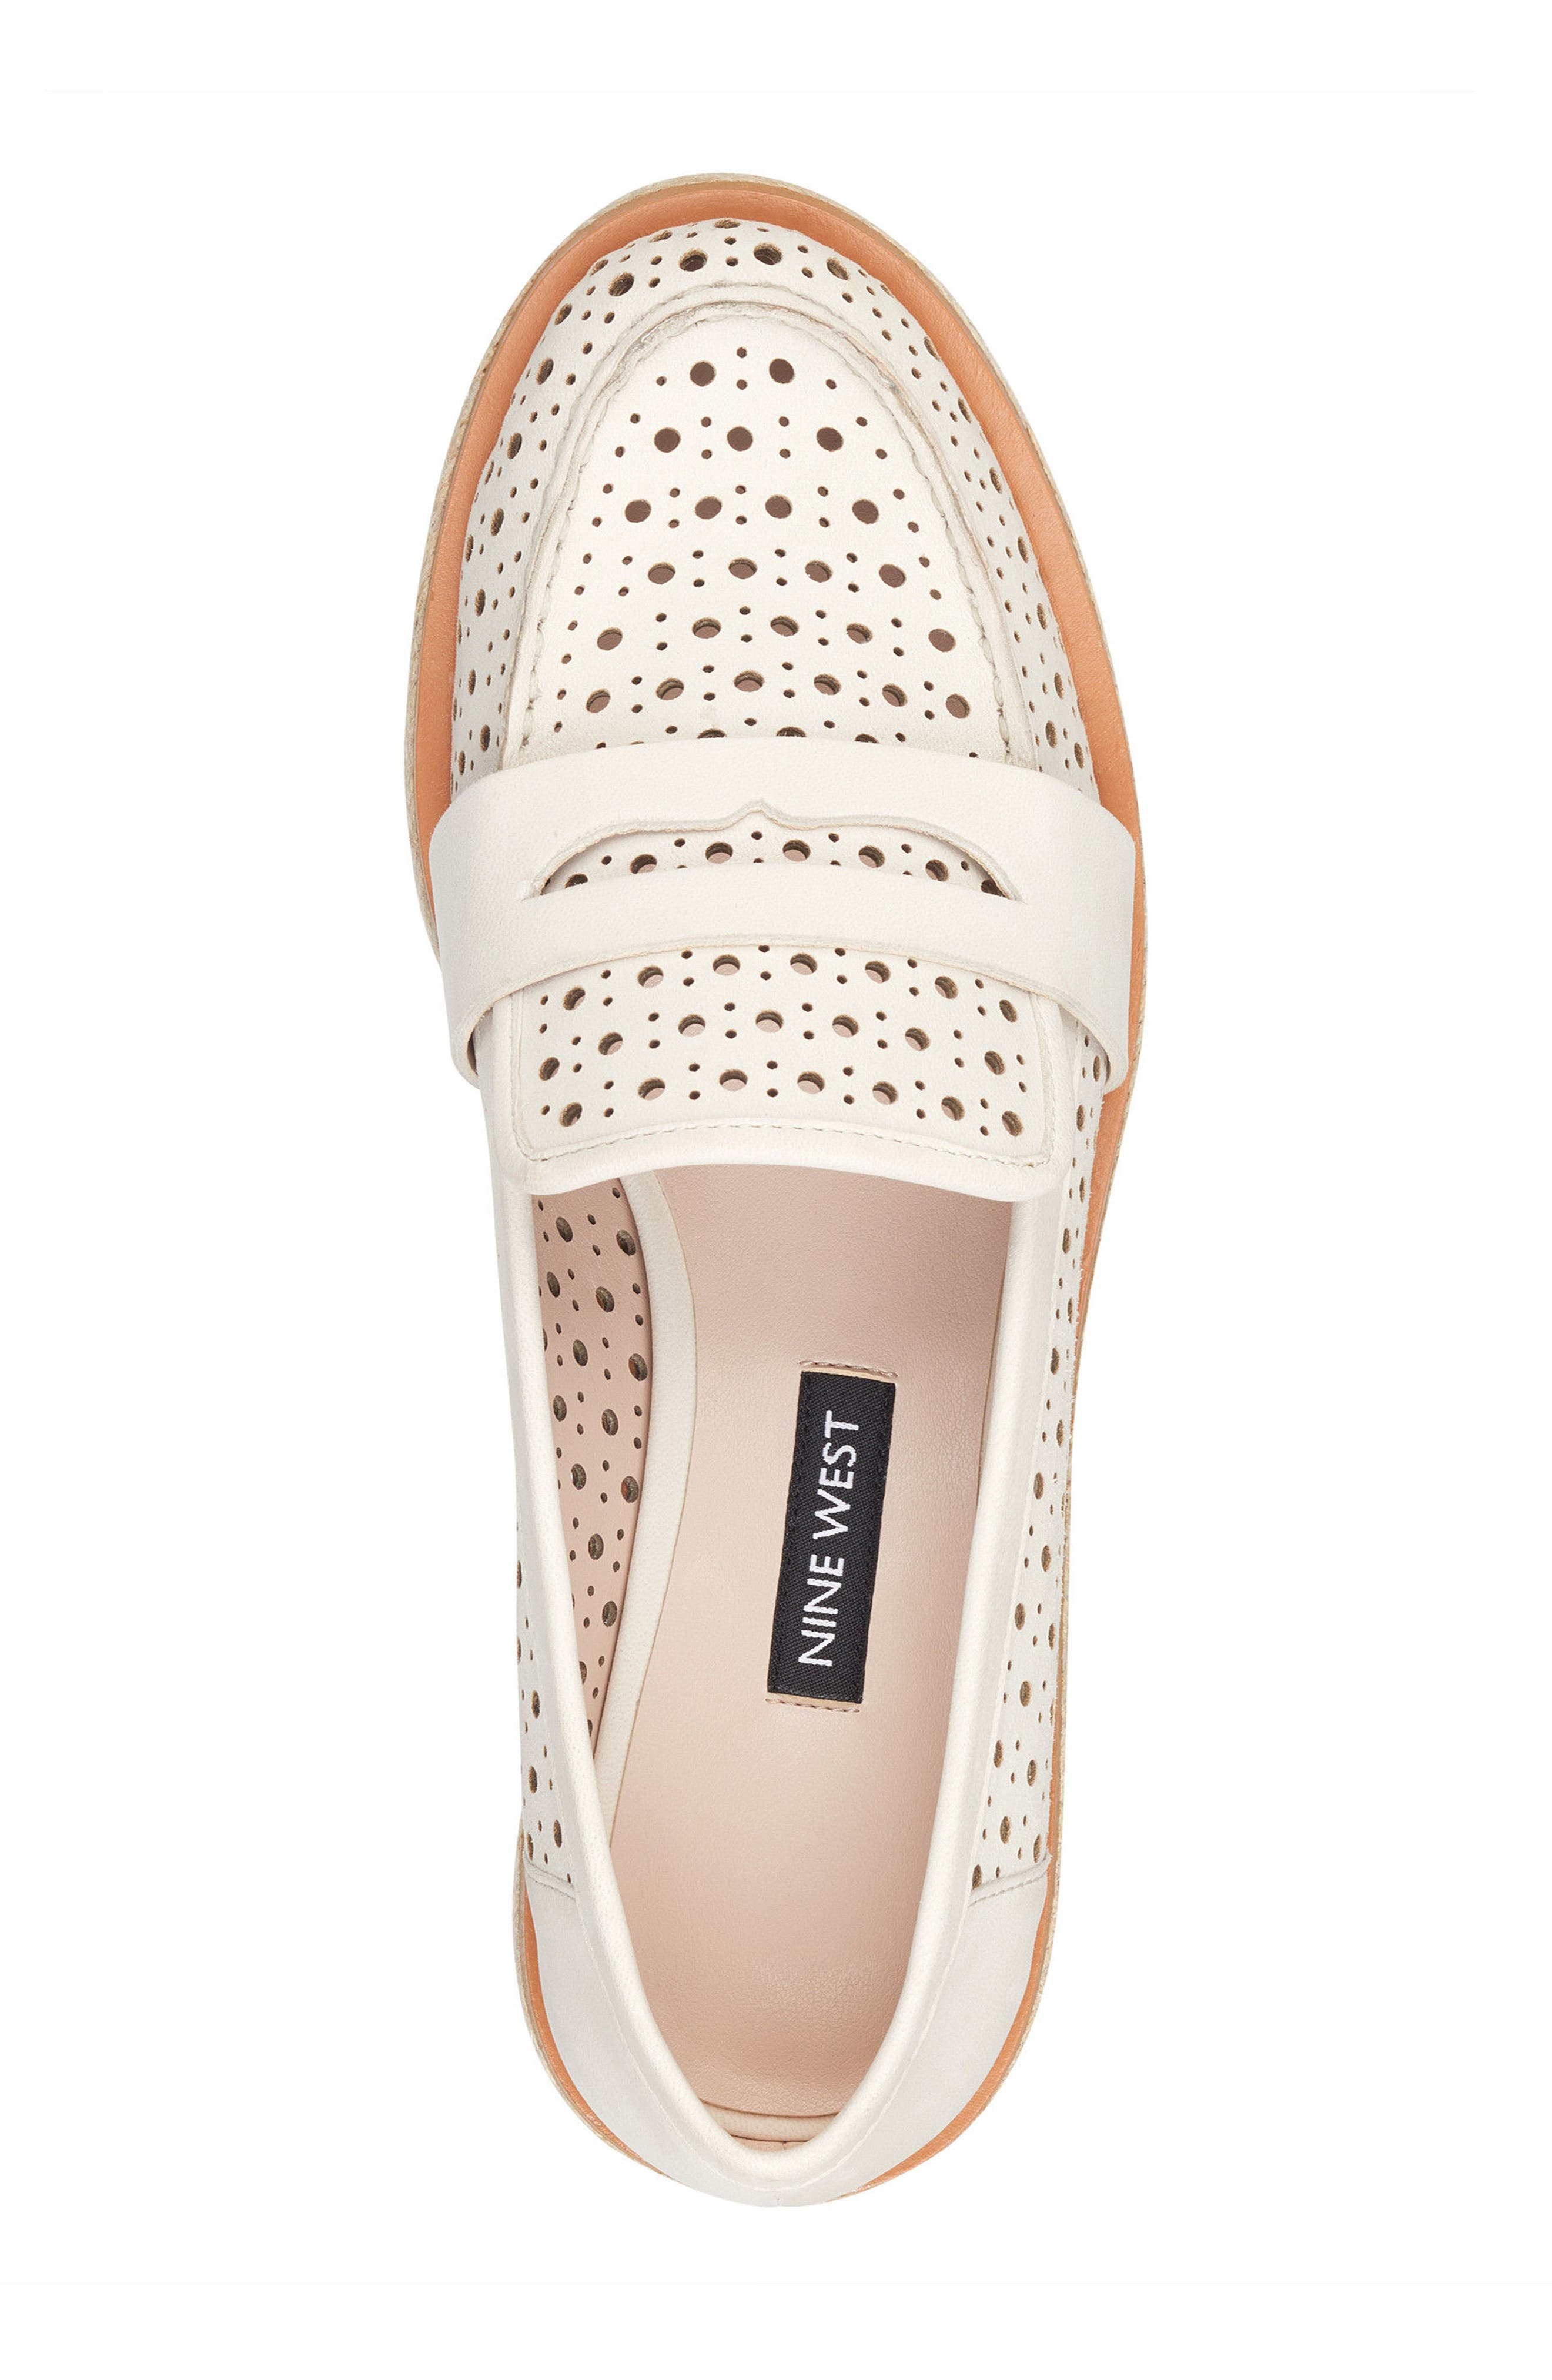 Gradskool Perforated Penny Loafer,                             Alternate thumbnail 5, color,                             Off White Leather